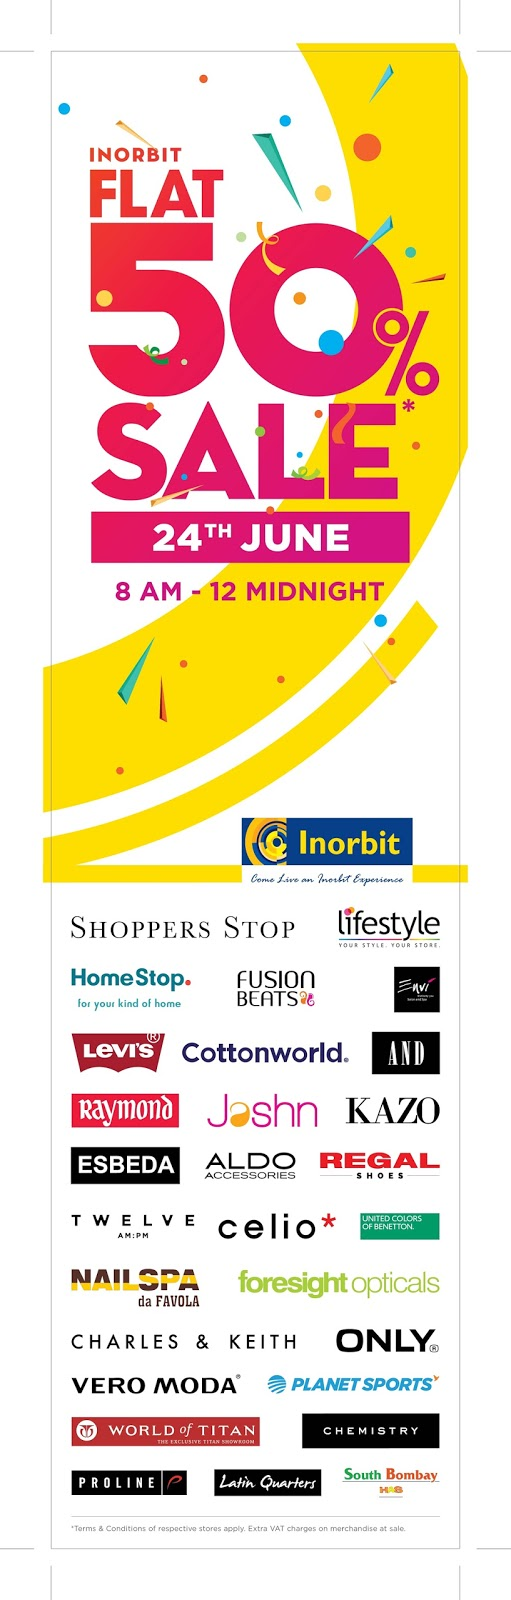 BIGGEST SALE OF THE SEASON ARRIVES! FLAT 50% OFF ON THE BEST OF THE BRANDS AT INORBIT MALL